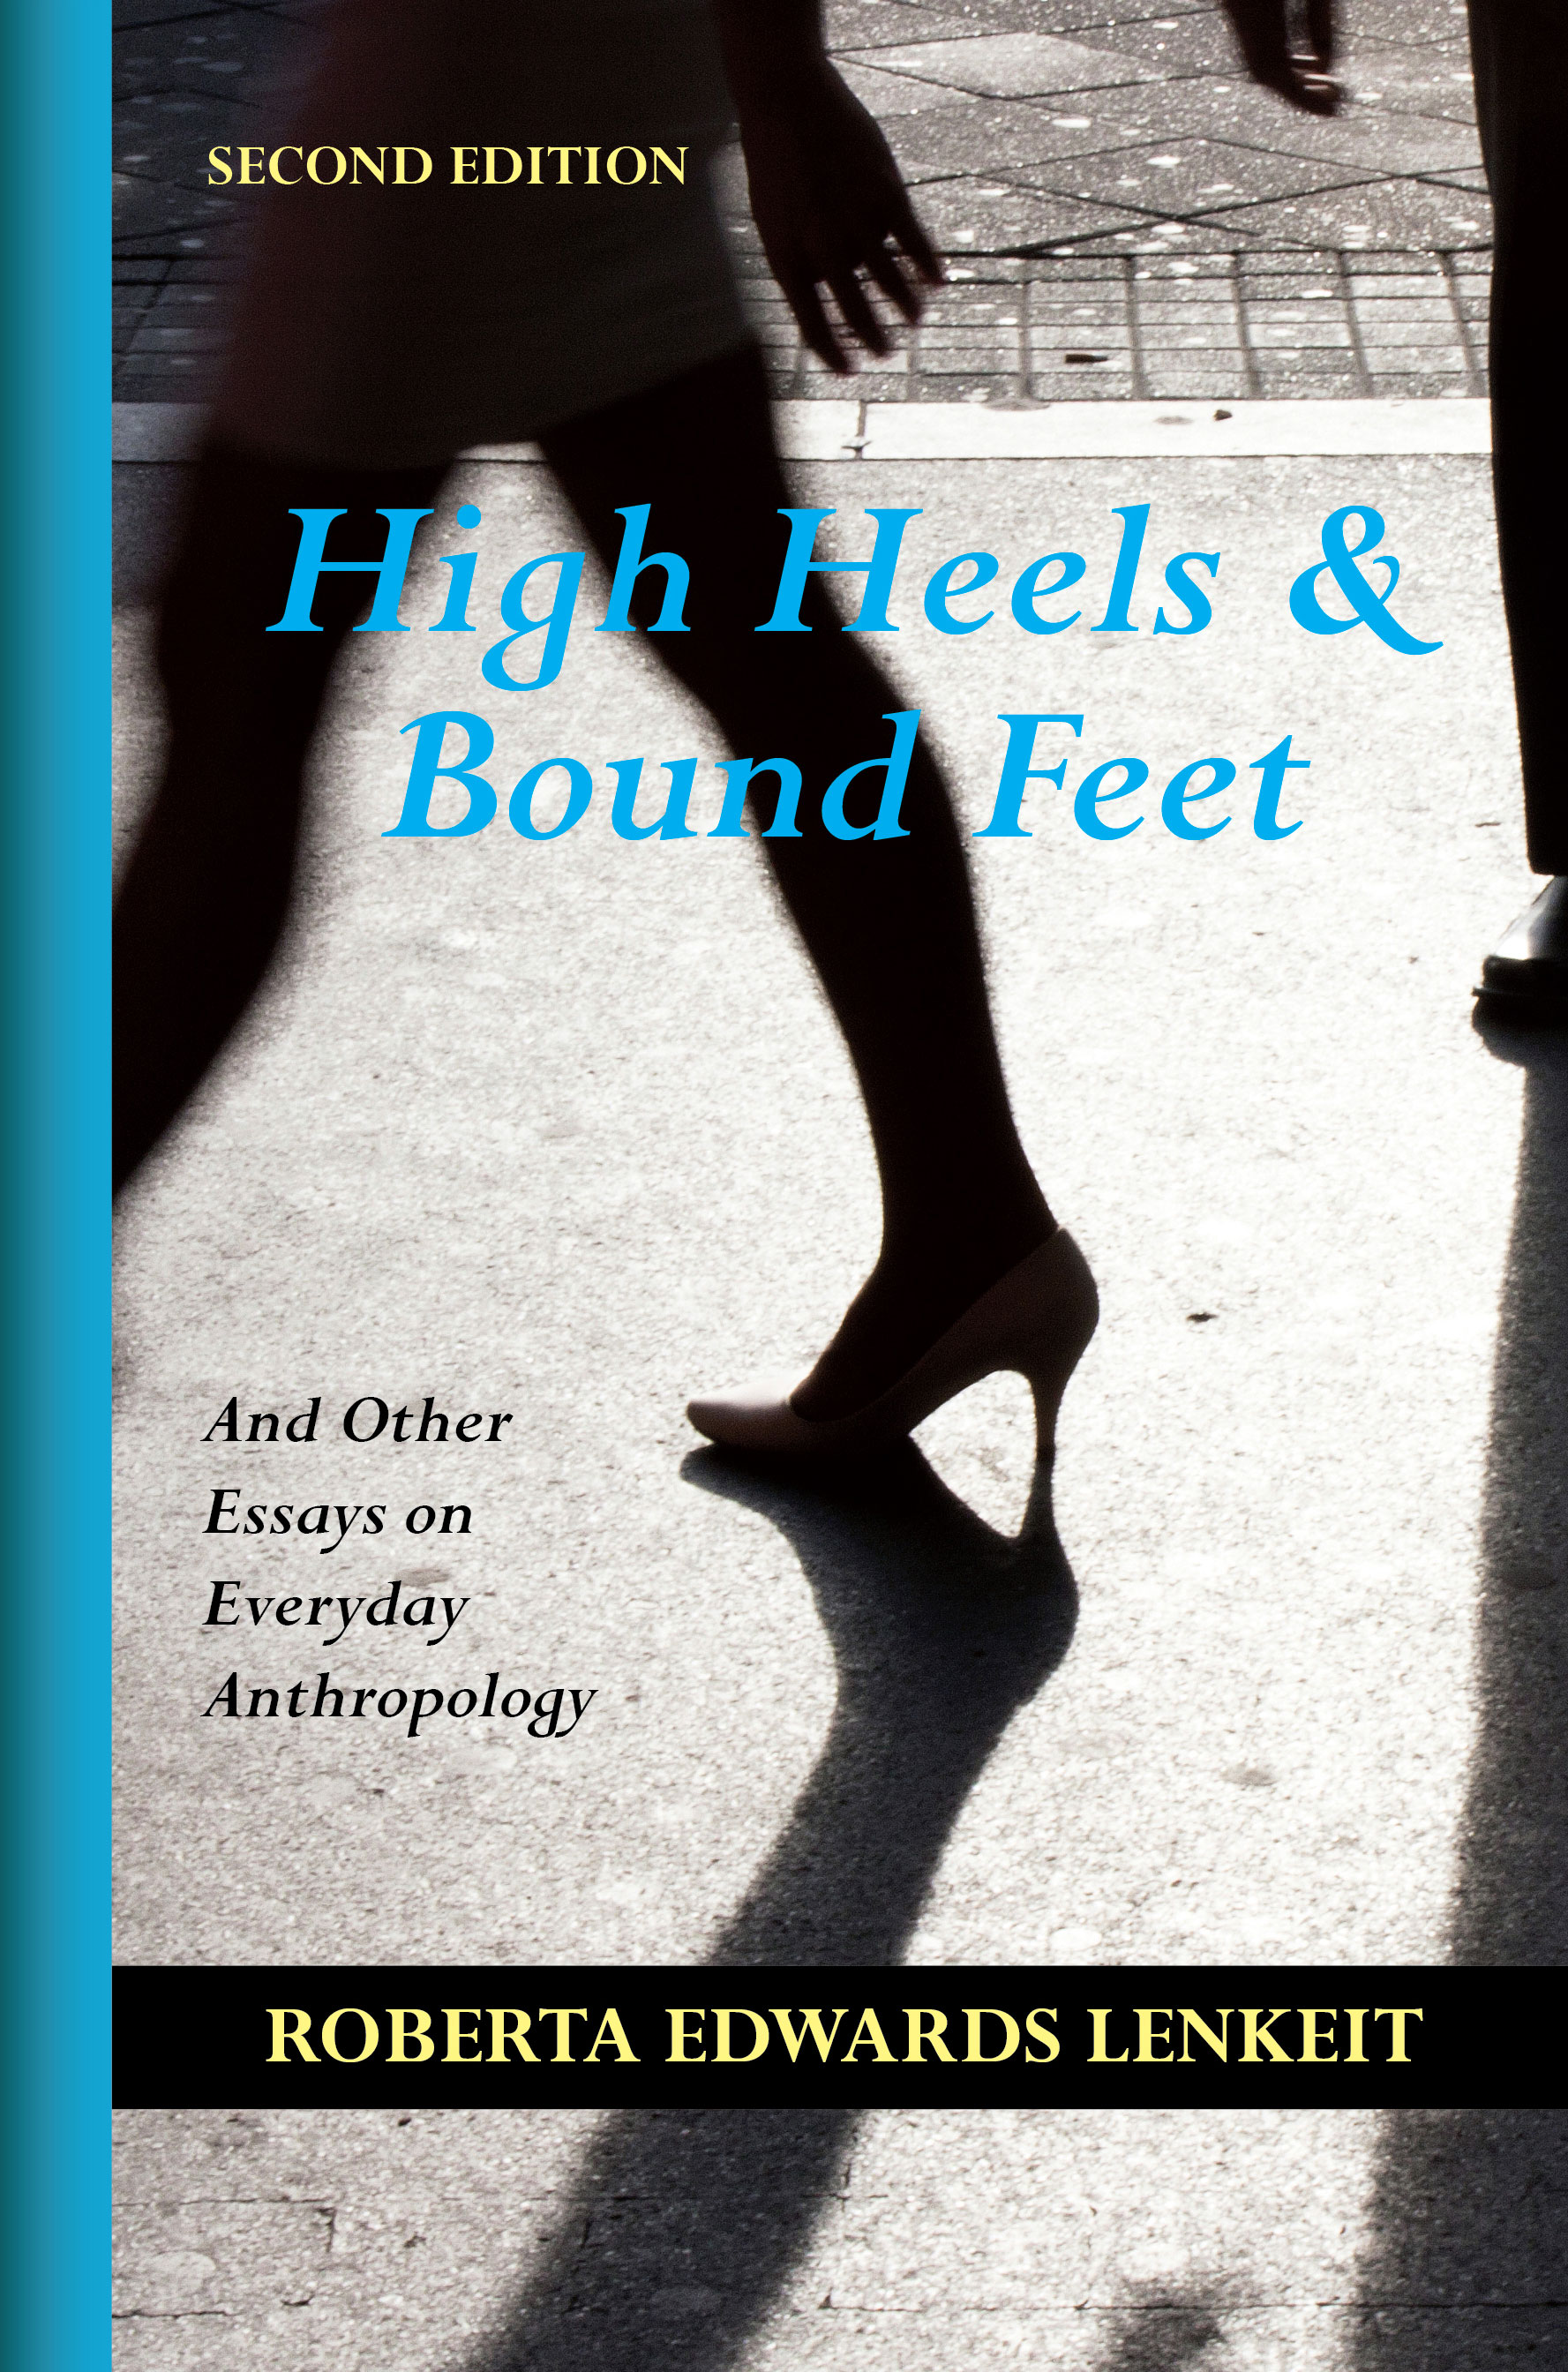 High Heels and Bound Feet: And Other Essays on Everyday Anthropology by Roberta Edwards Lenkeit